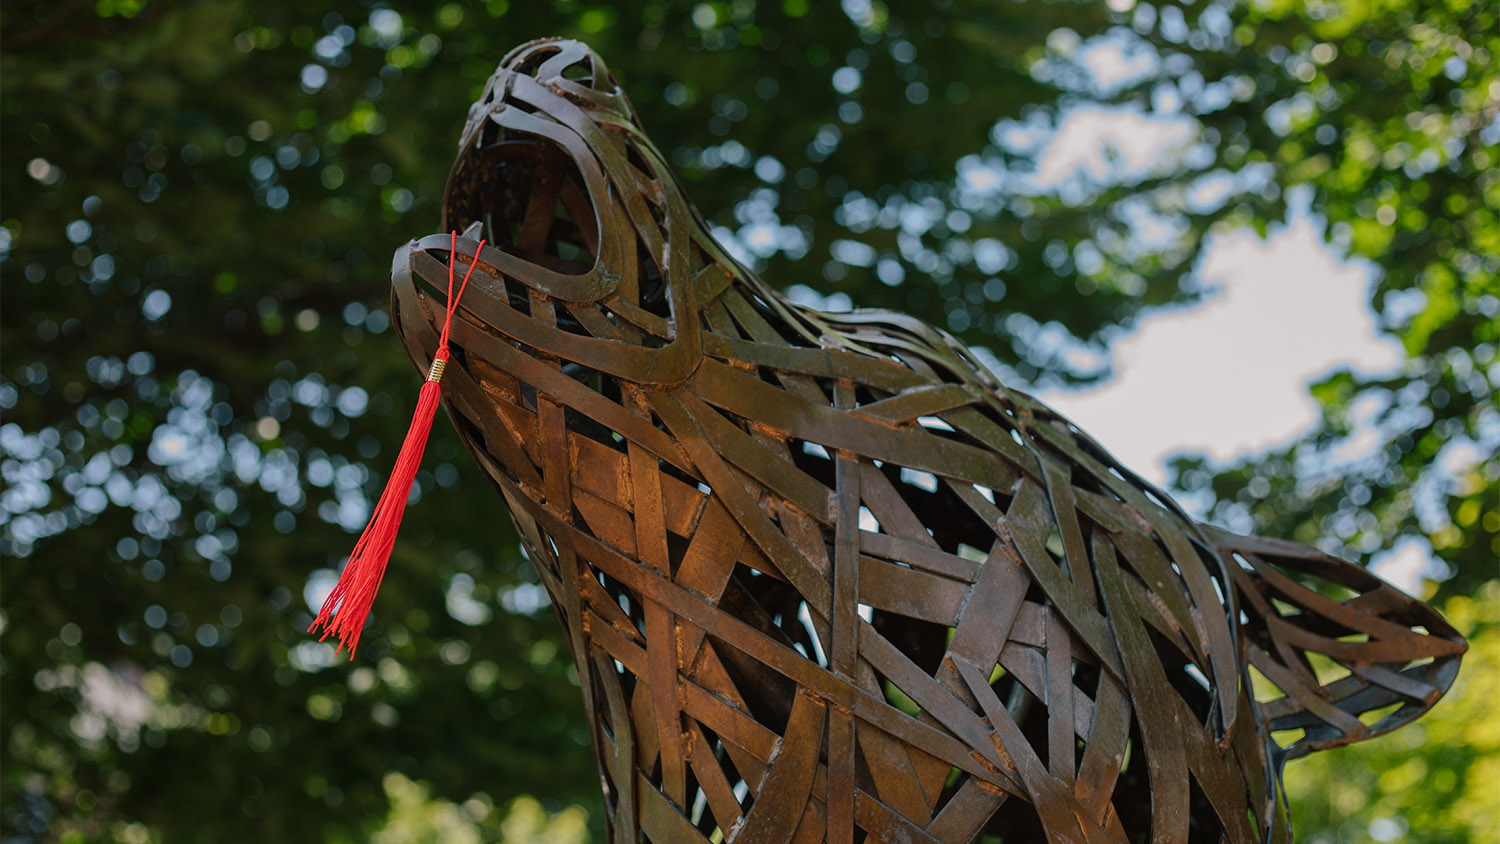 Wolf statue with a red tassel in its mouth